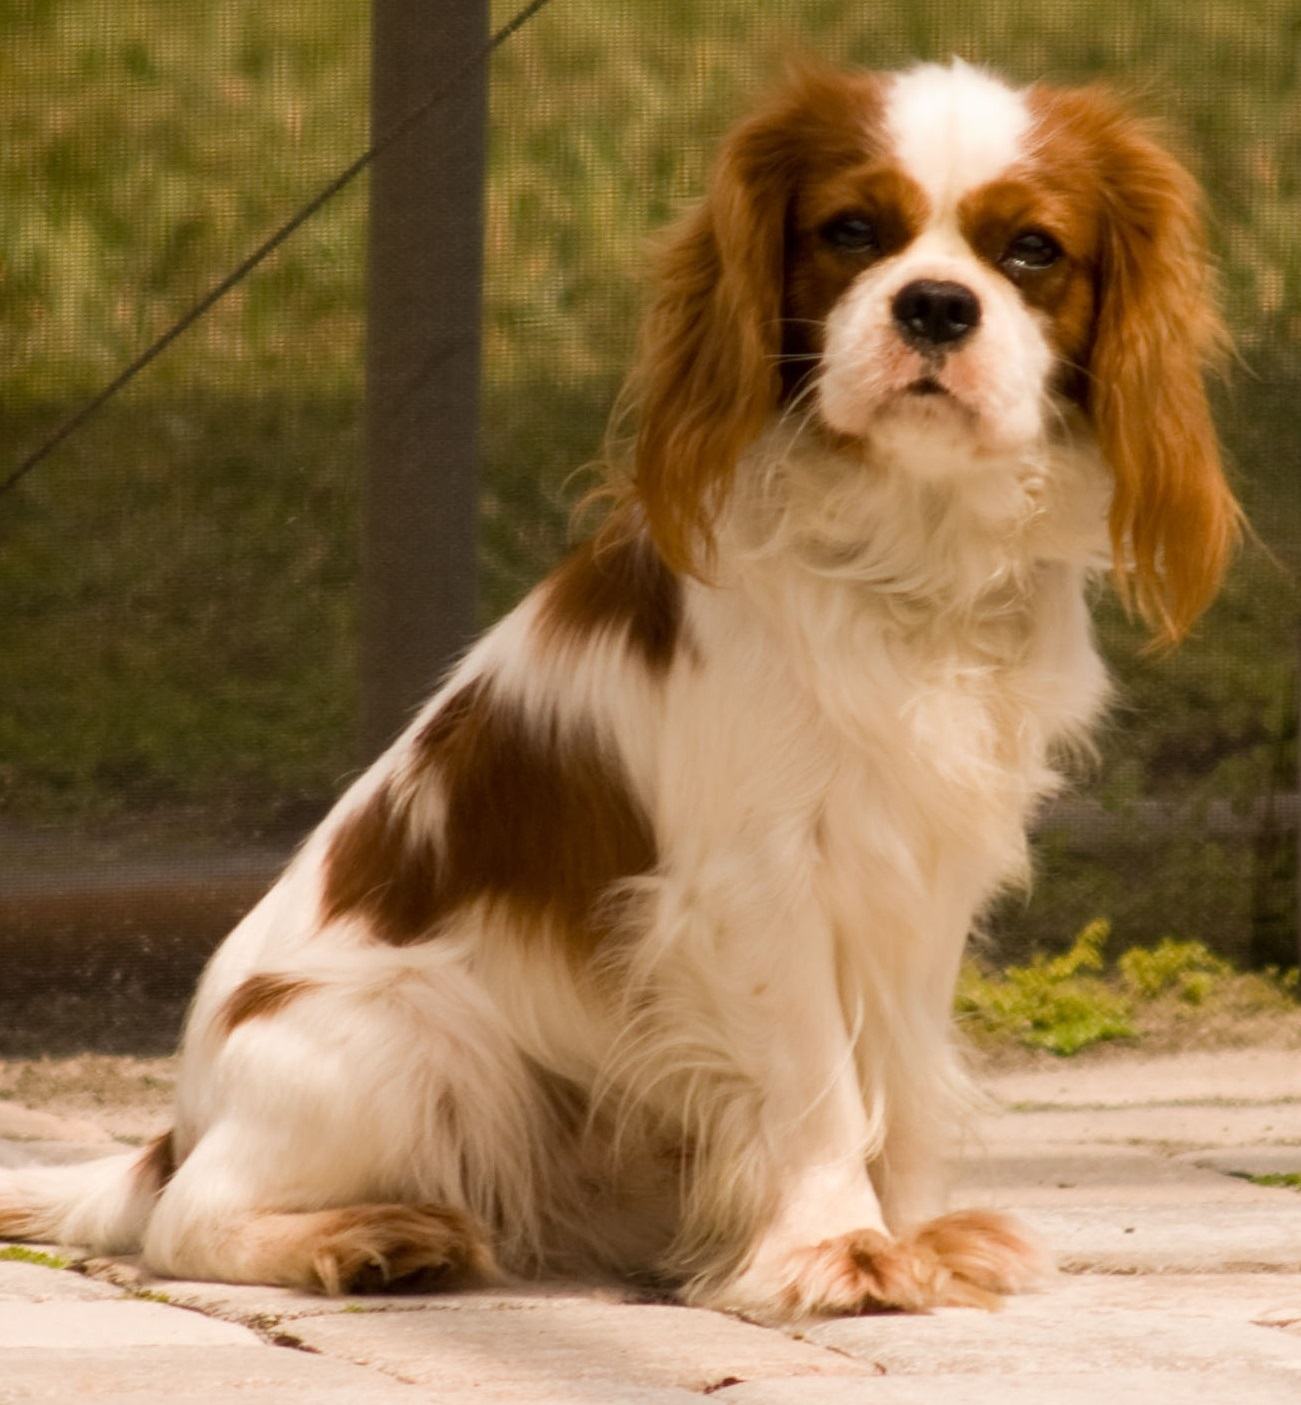 Image of: Airlines Cavalier Health Cavalier King Charles Spaniels Miscellaneous Disorders